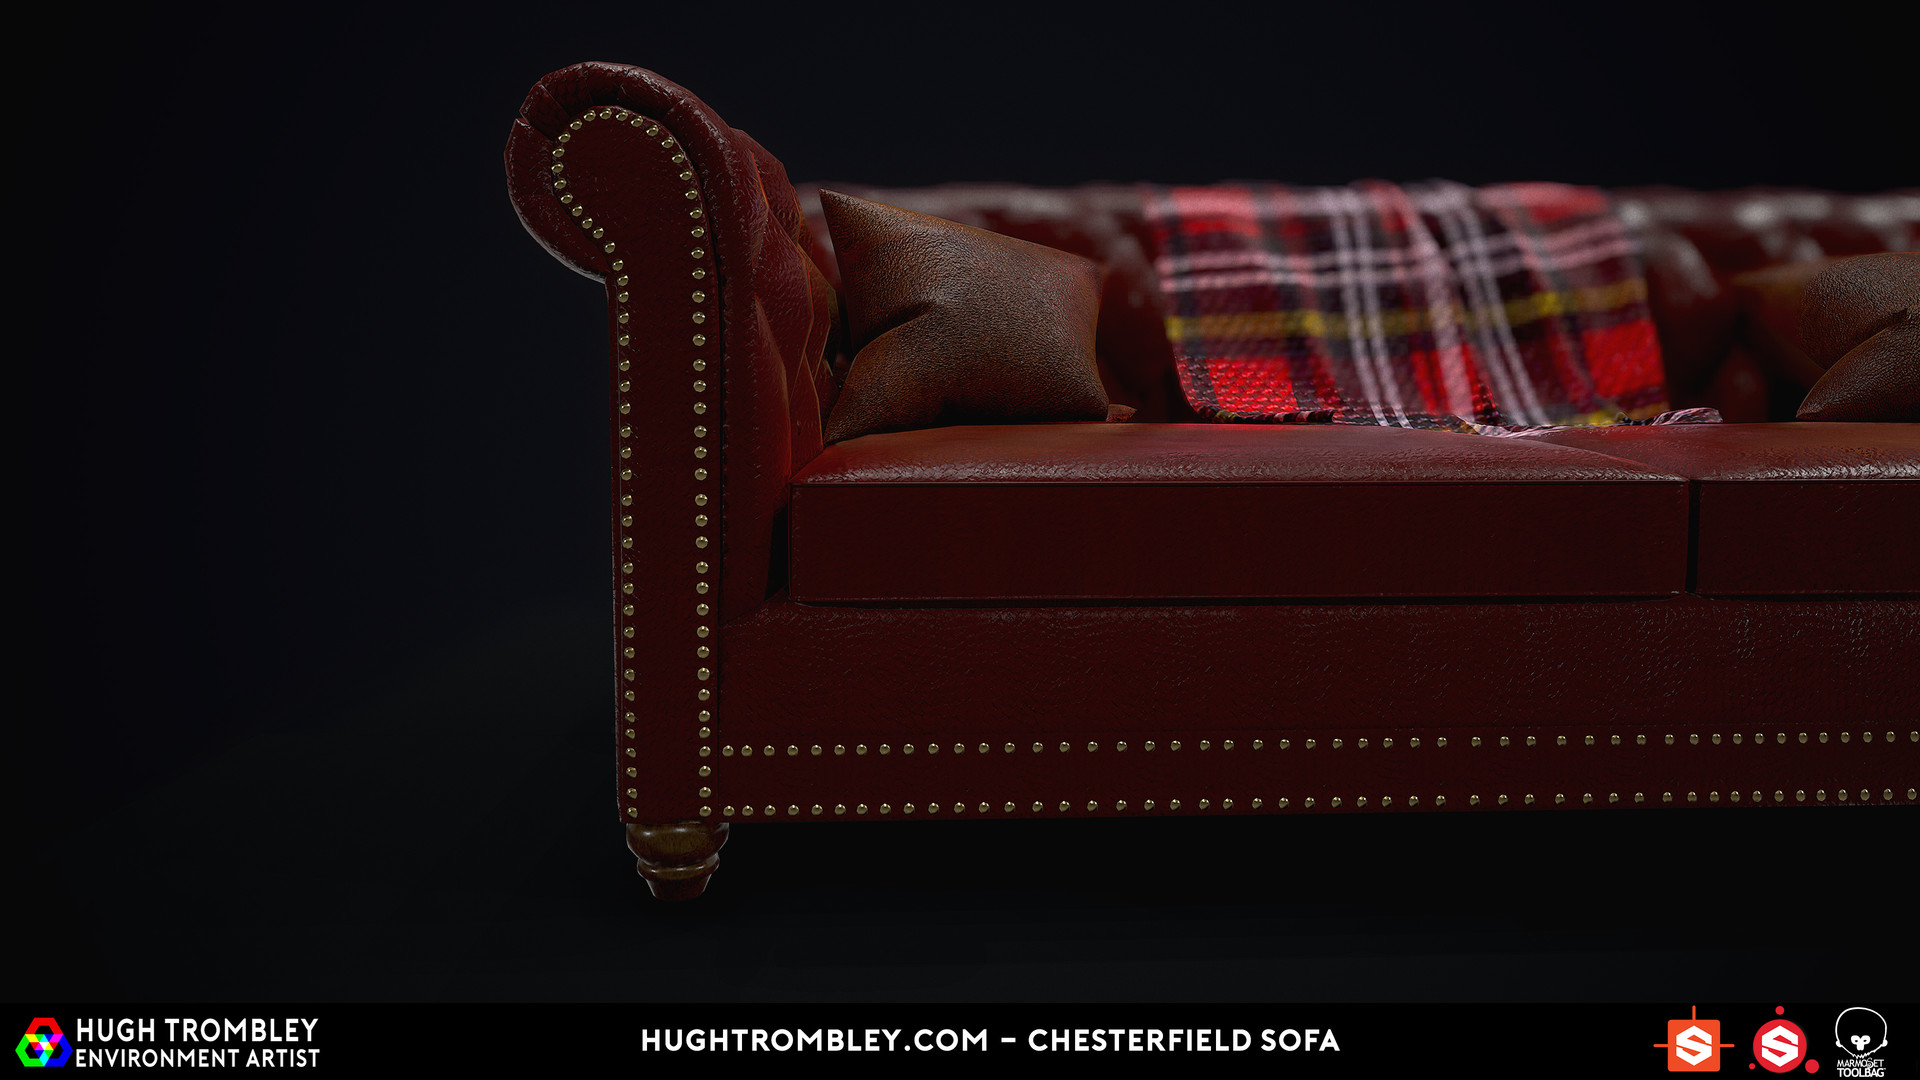 tartan chesterfield sofa curved outdoor furniture hugh trombley 3d environment artist